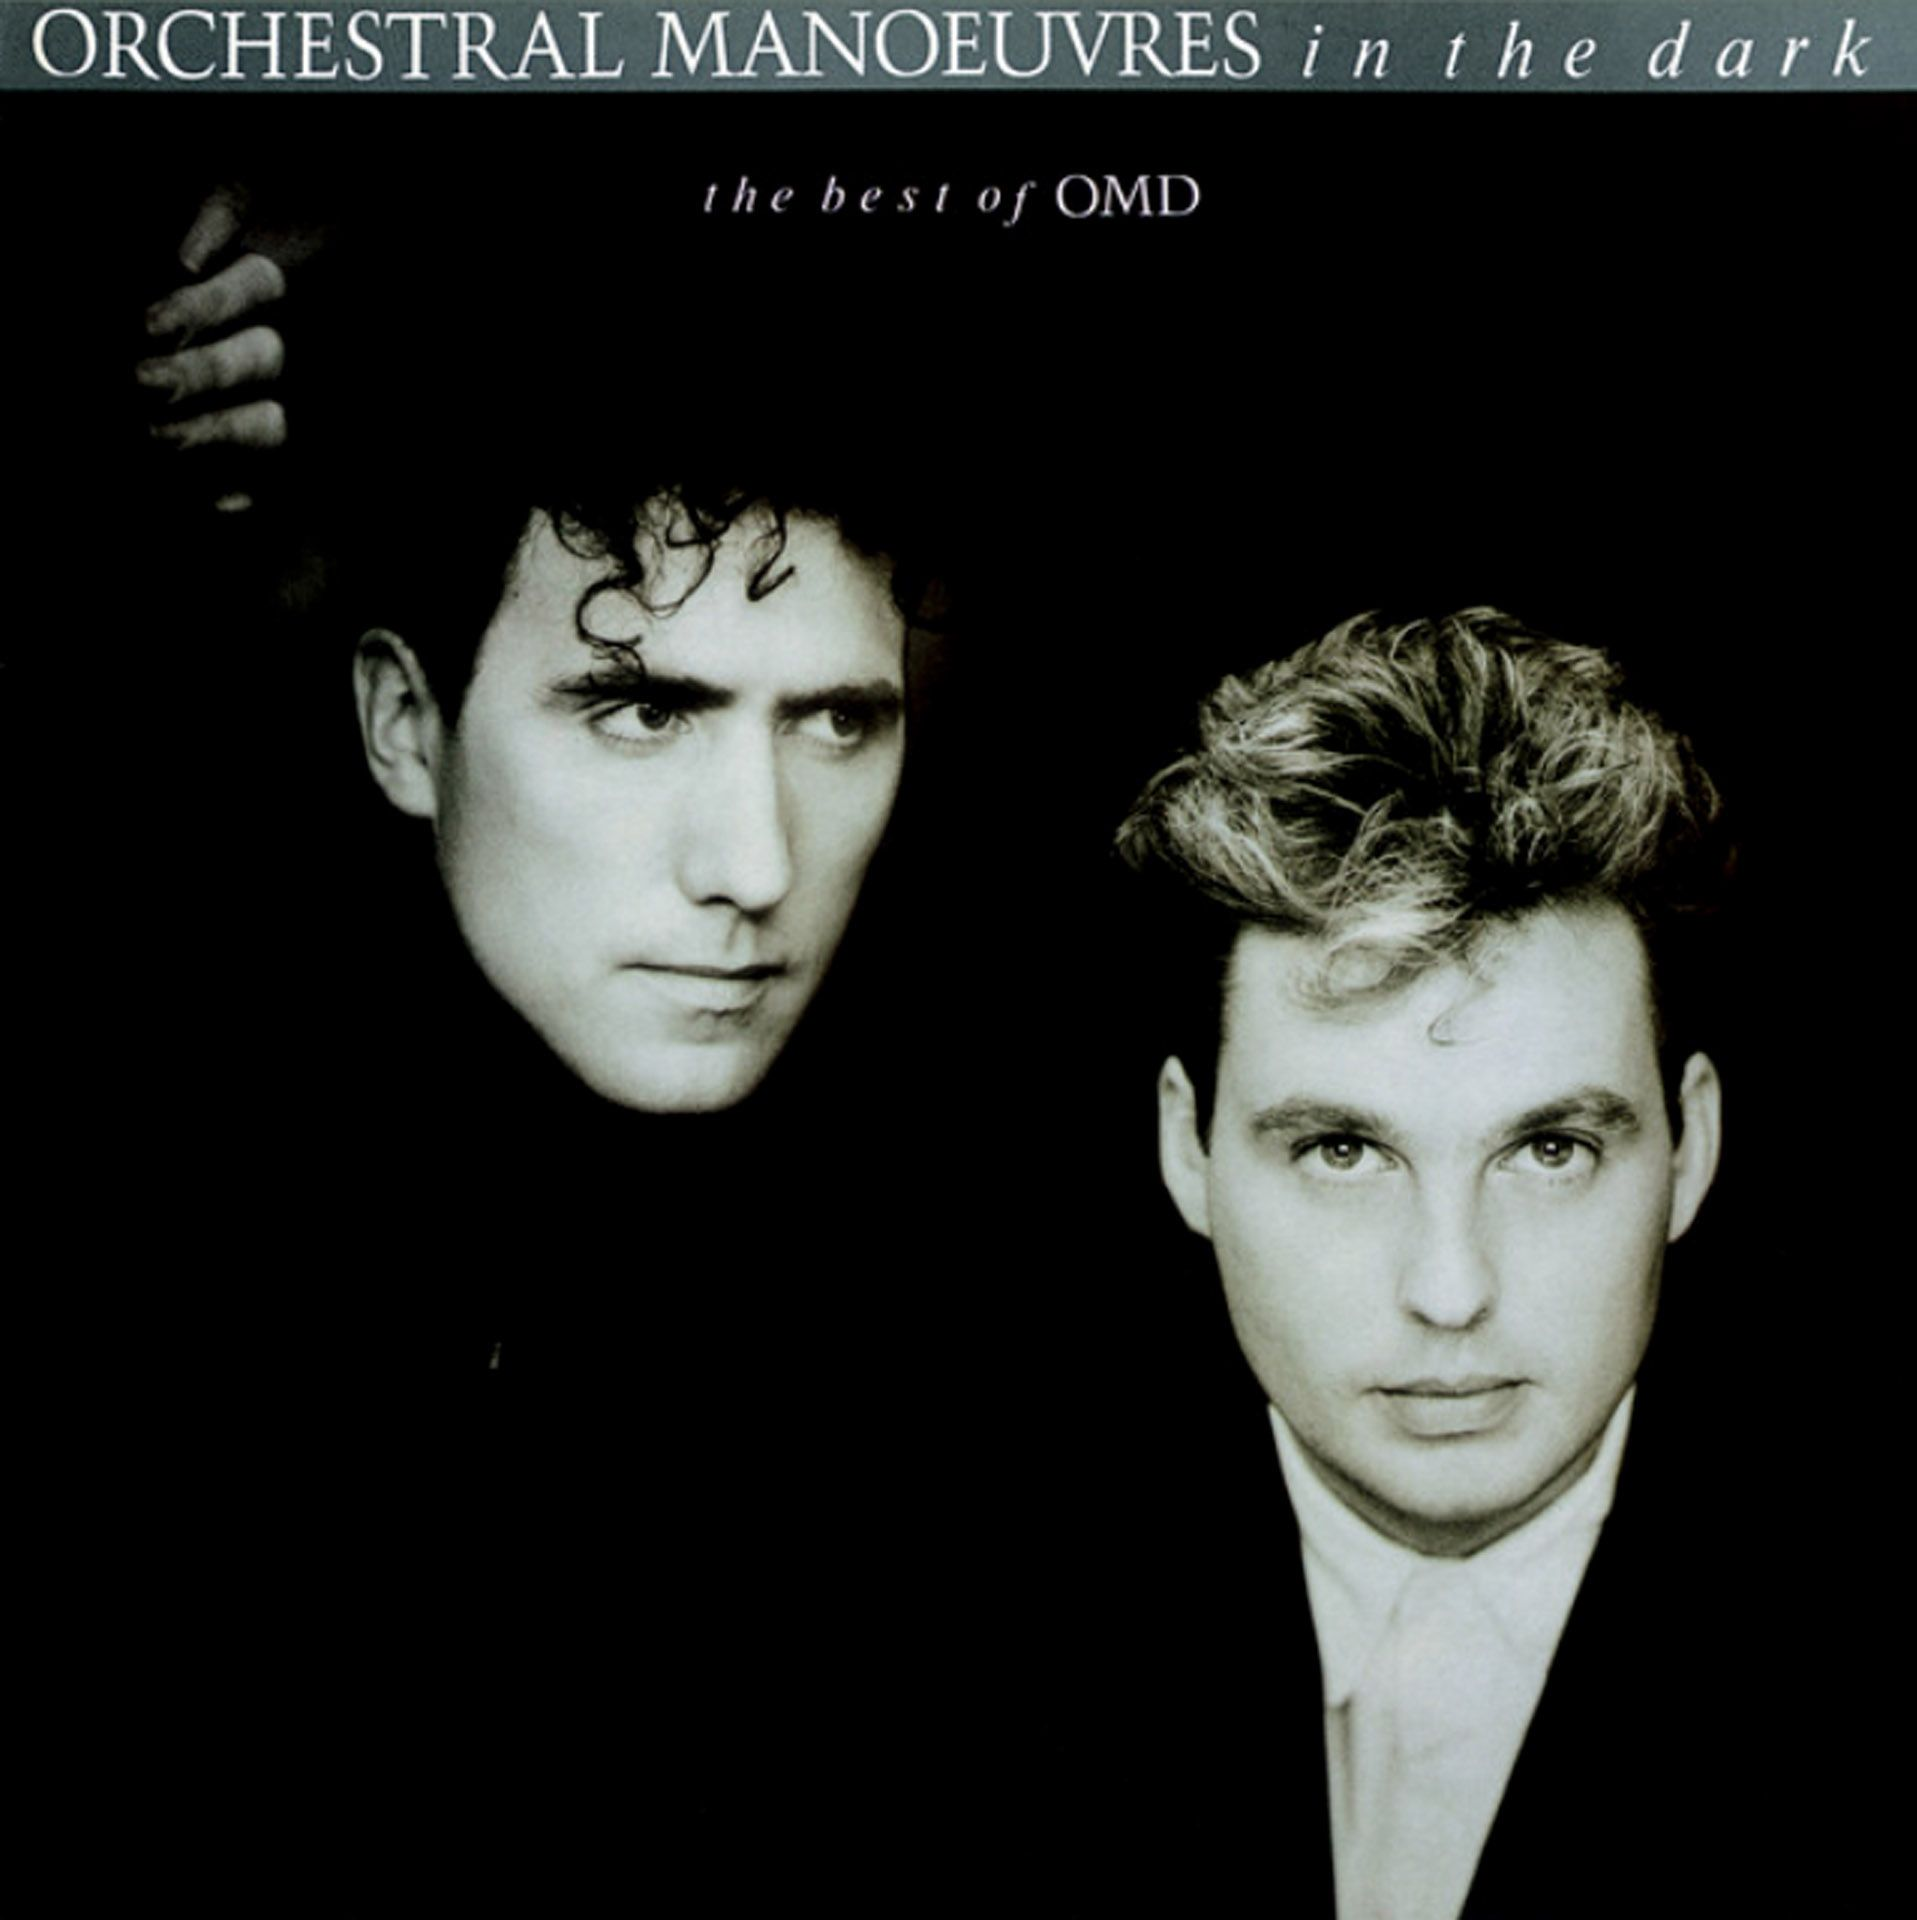 Enola Gay song by Orchestral Manoeuvres In The Dark